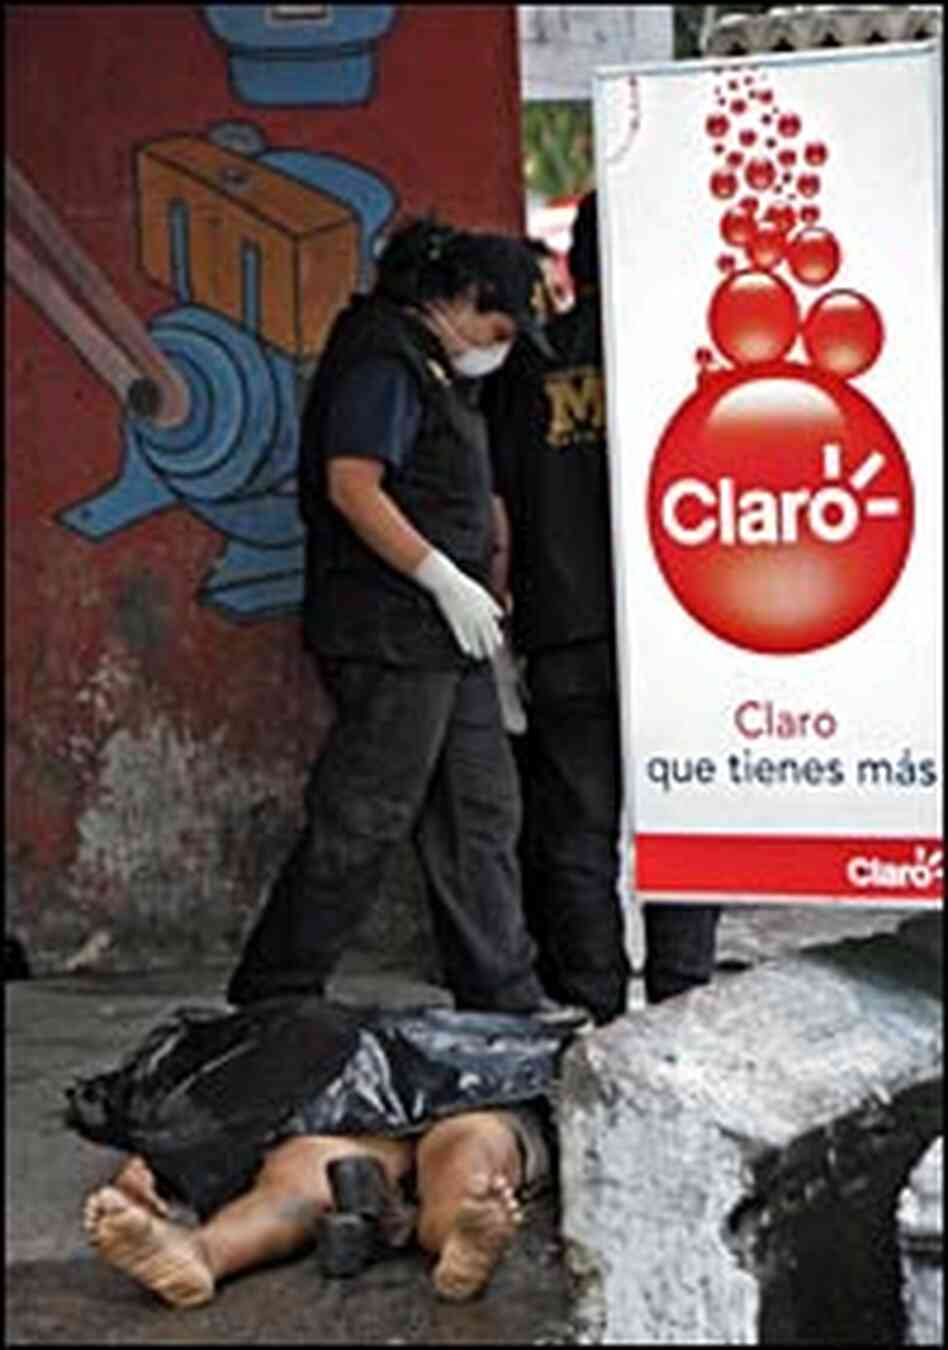 A public ministry officer looks at a murdered woman in Guatemala City in September 2006.